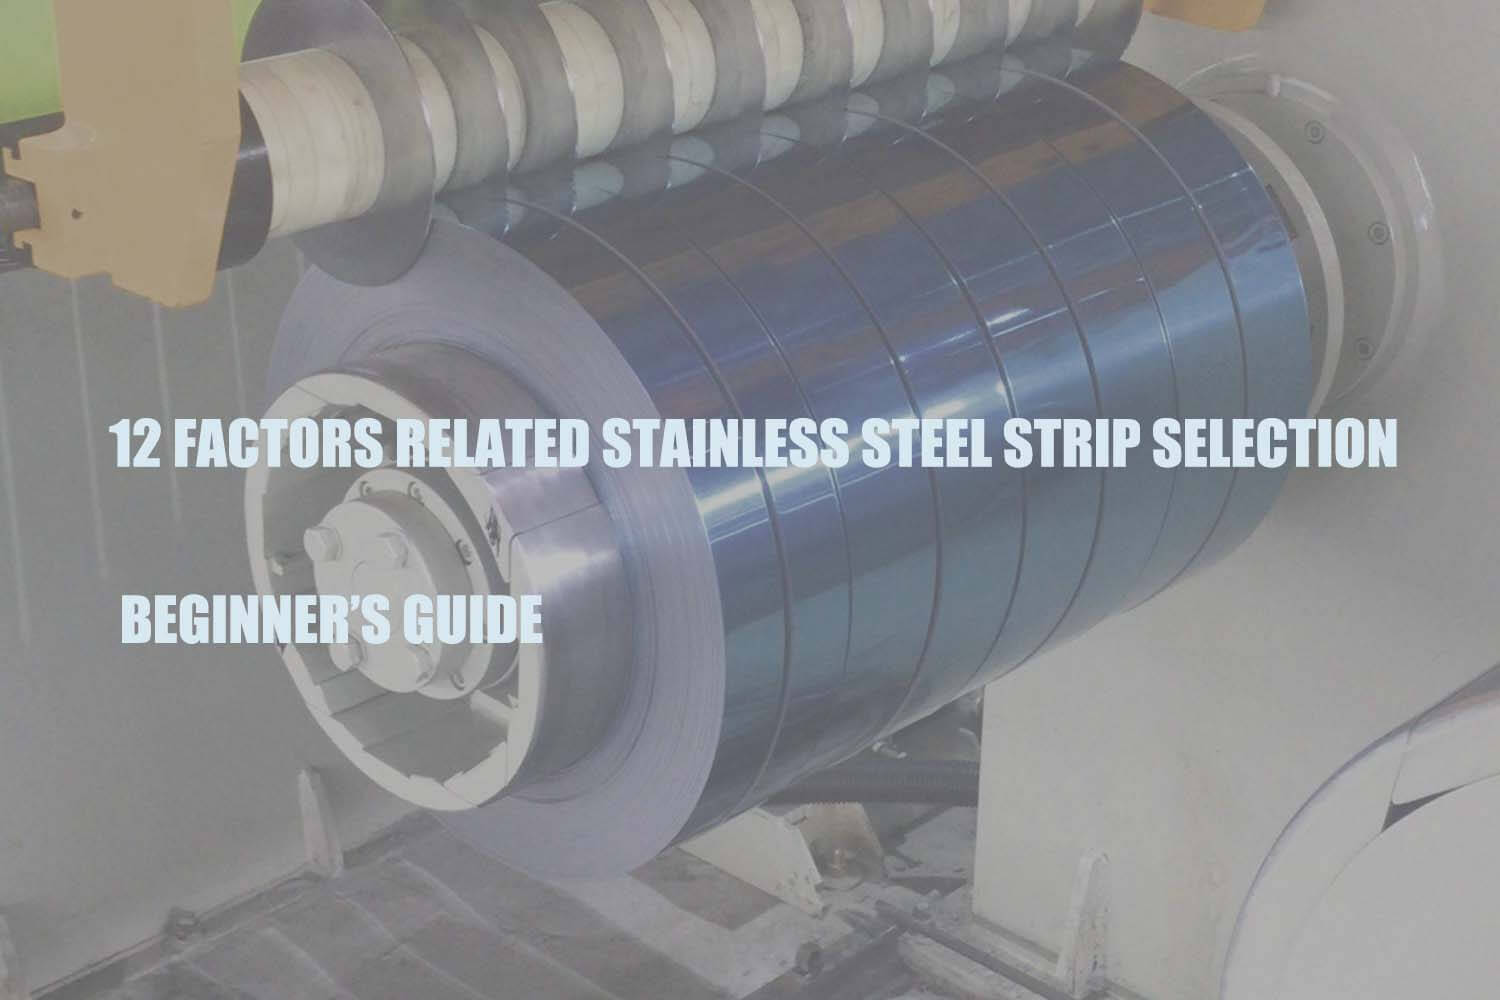 12-factors-related-stainless-steel-strip-selection